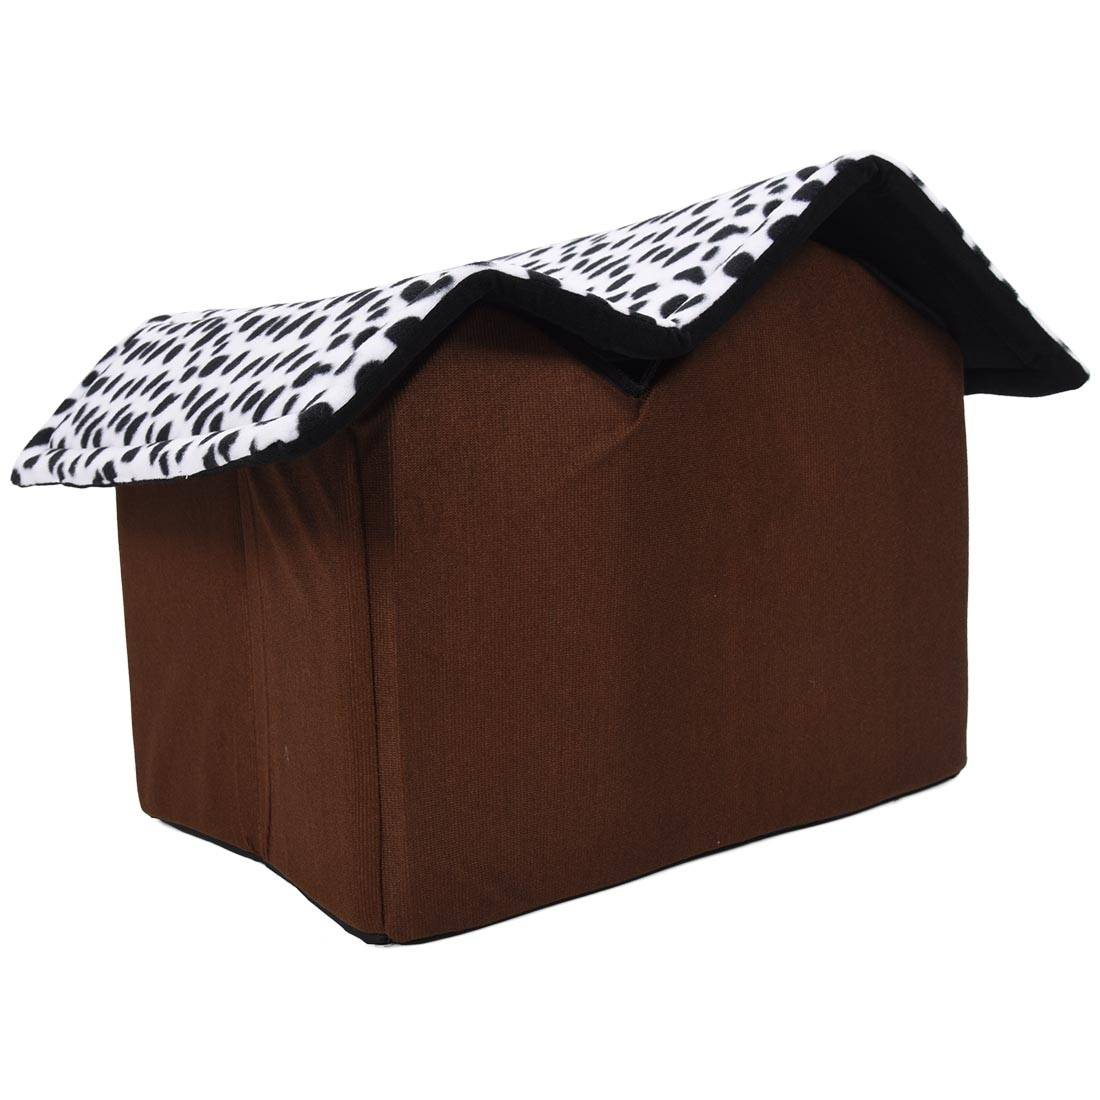 Hot Removable Dog Beds Double Pet House Brown Dog Room Cat Beds Dog Cushion Luxury Pet Products 55 x 40 x 42 cm Cat's Accessories Dog's Accessories